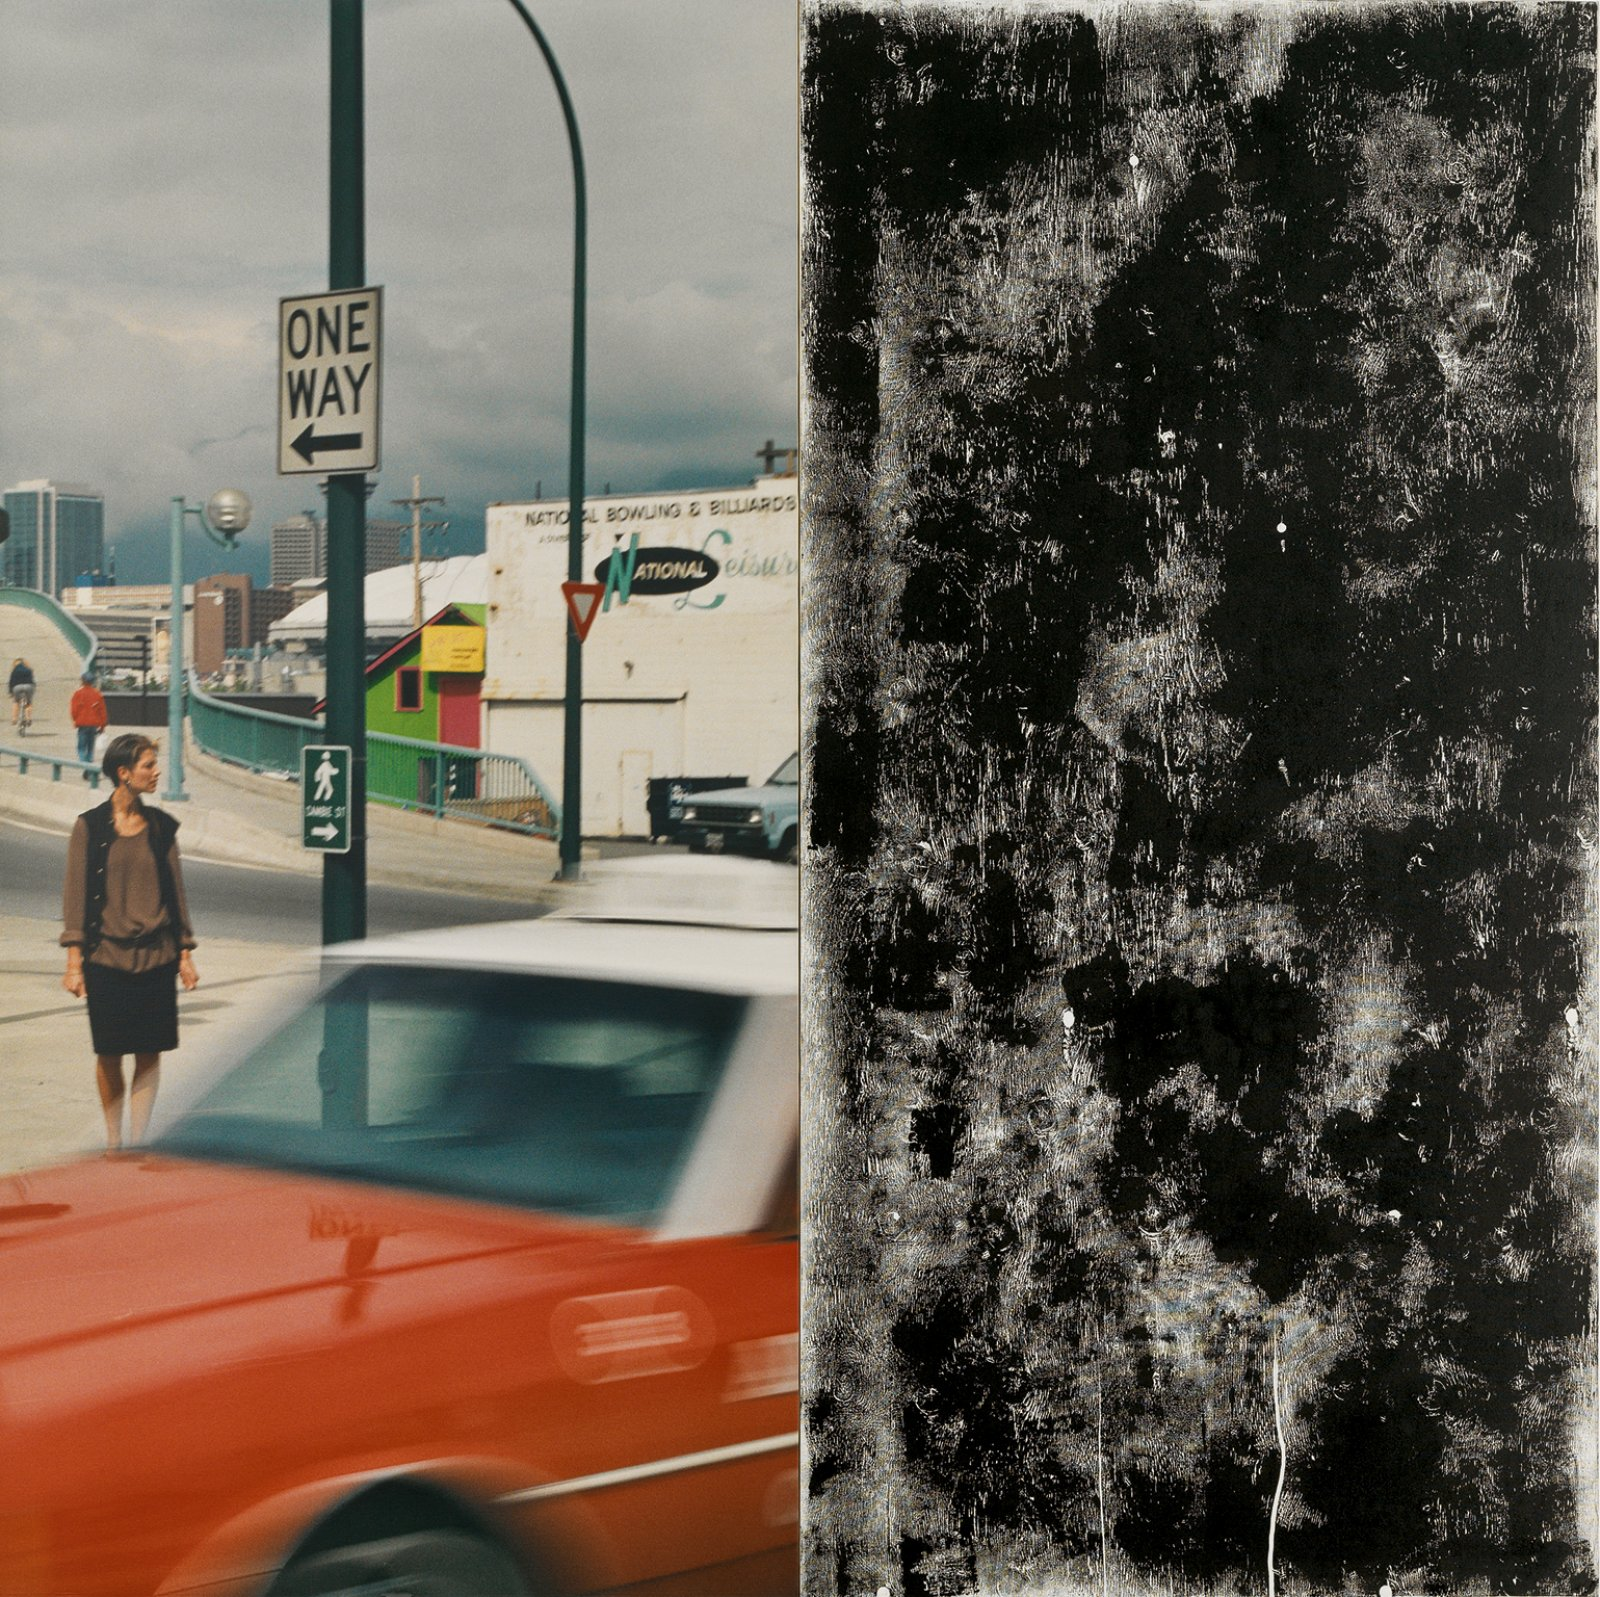 Ian Wallace,Untitled (In the Street I), 1988, photolaminate with acrylic and ink monoprinton canvas, diptych, 96 x 96 in.(244 x 244 cm). Installation view,A Literature of Images, Kunsthalle Zürich, 2008